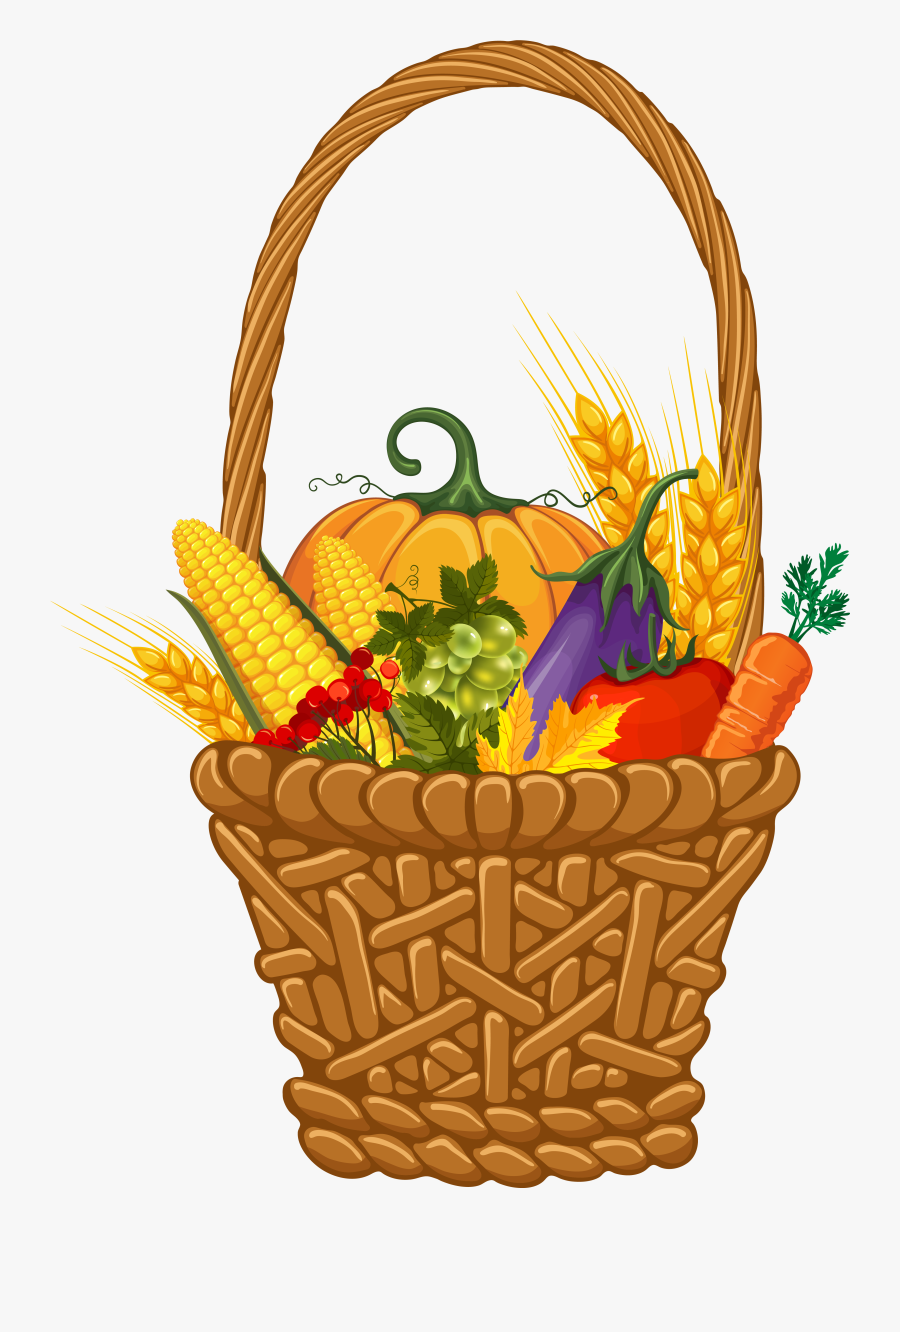 28 Collection Of Thanksgiving Baskets Clipart - Fall Basket Clip Art, Transparent Clipart